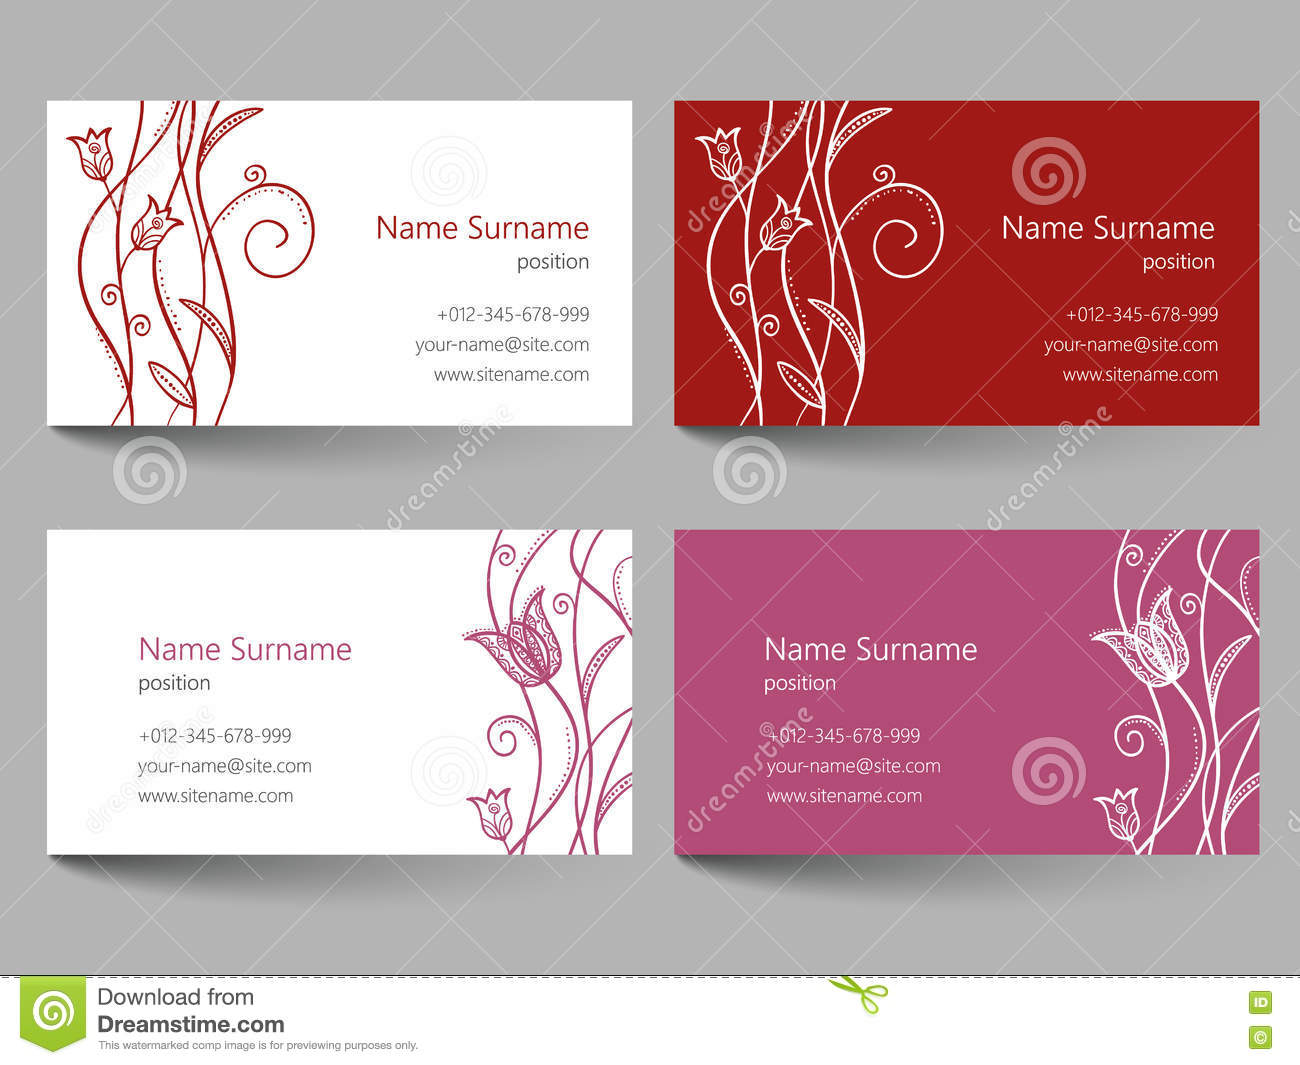 Business Card With Floral Doodle Design Stock Vector - Image: 75615772